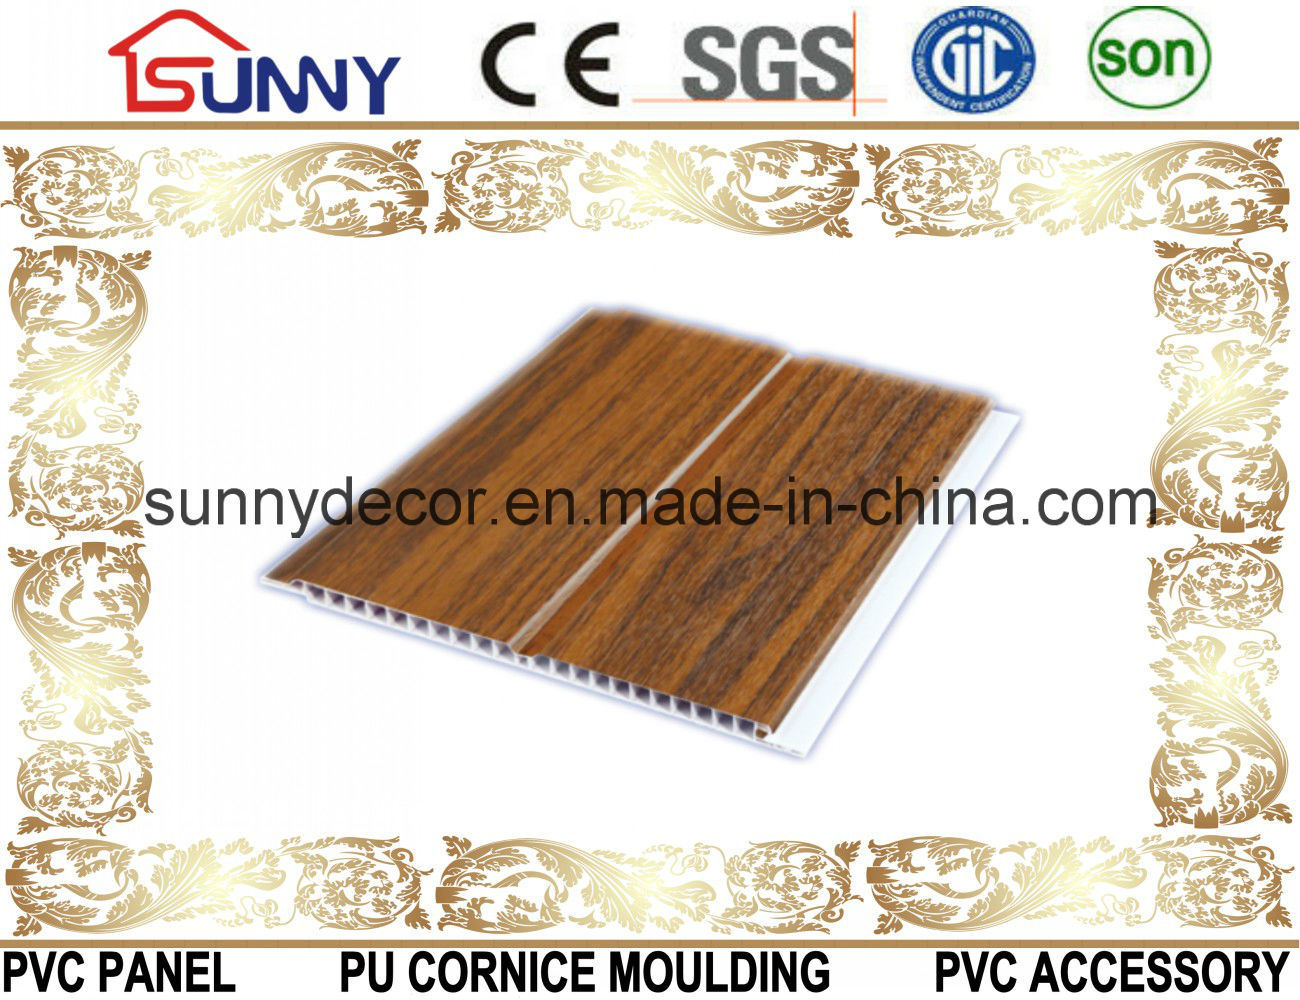 Laminated Interior PVC Wall Panel & PVC Ceiling Board